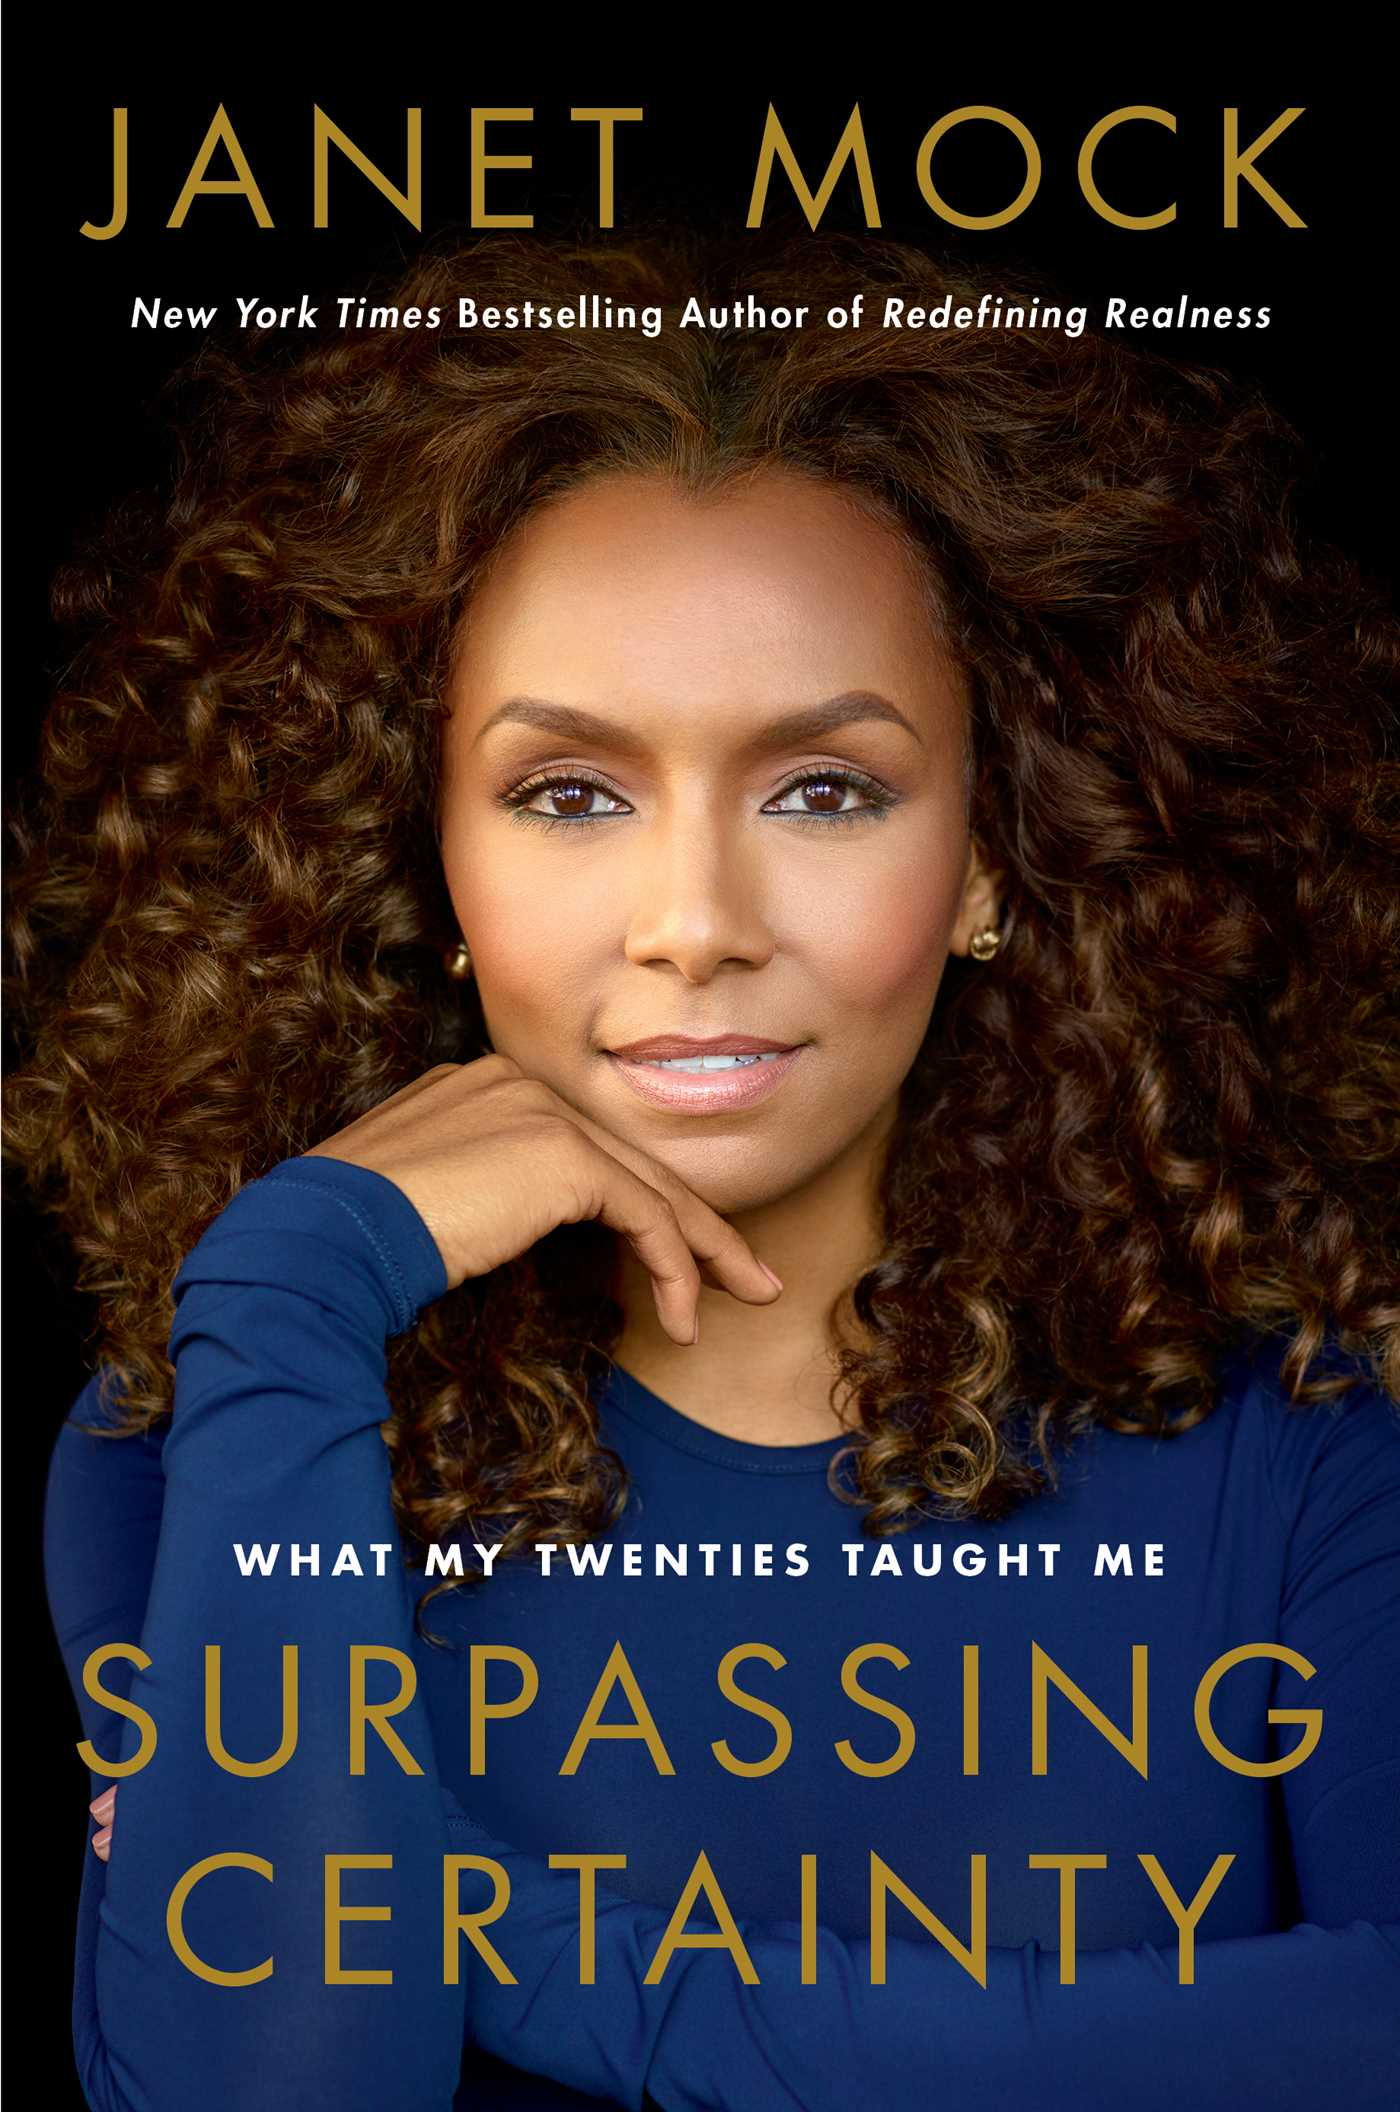 Janet Mock Grants Us Permission to Live Life Authentically With Her New Memoir